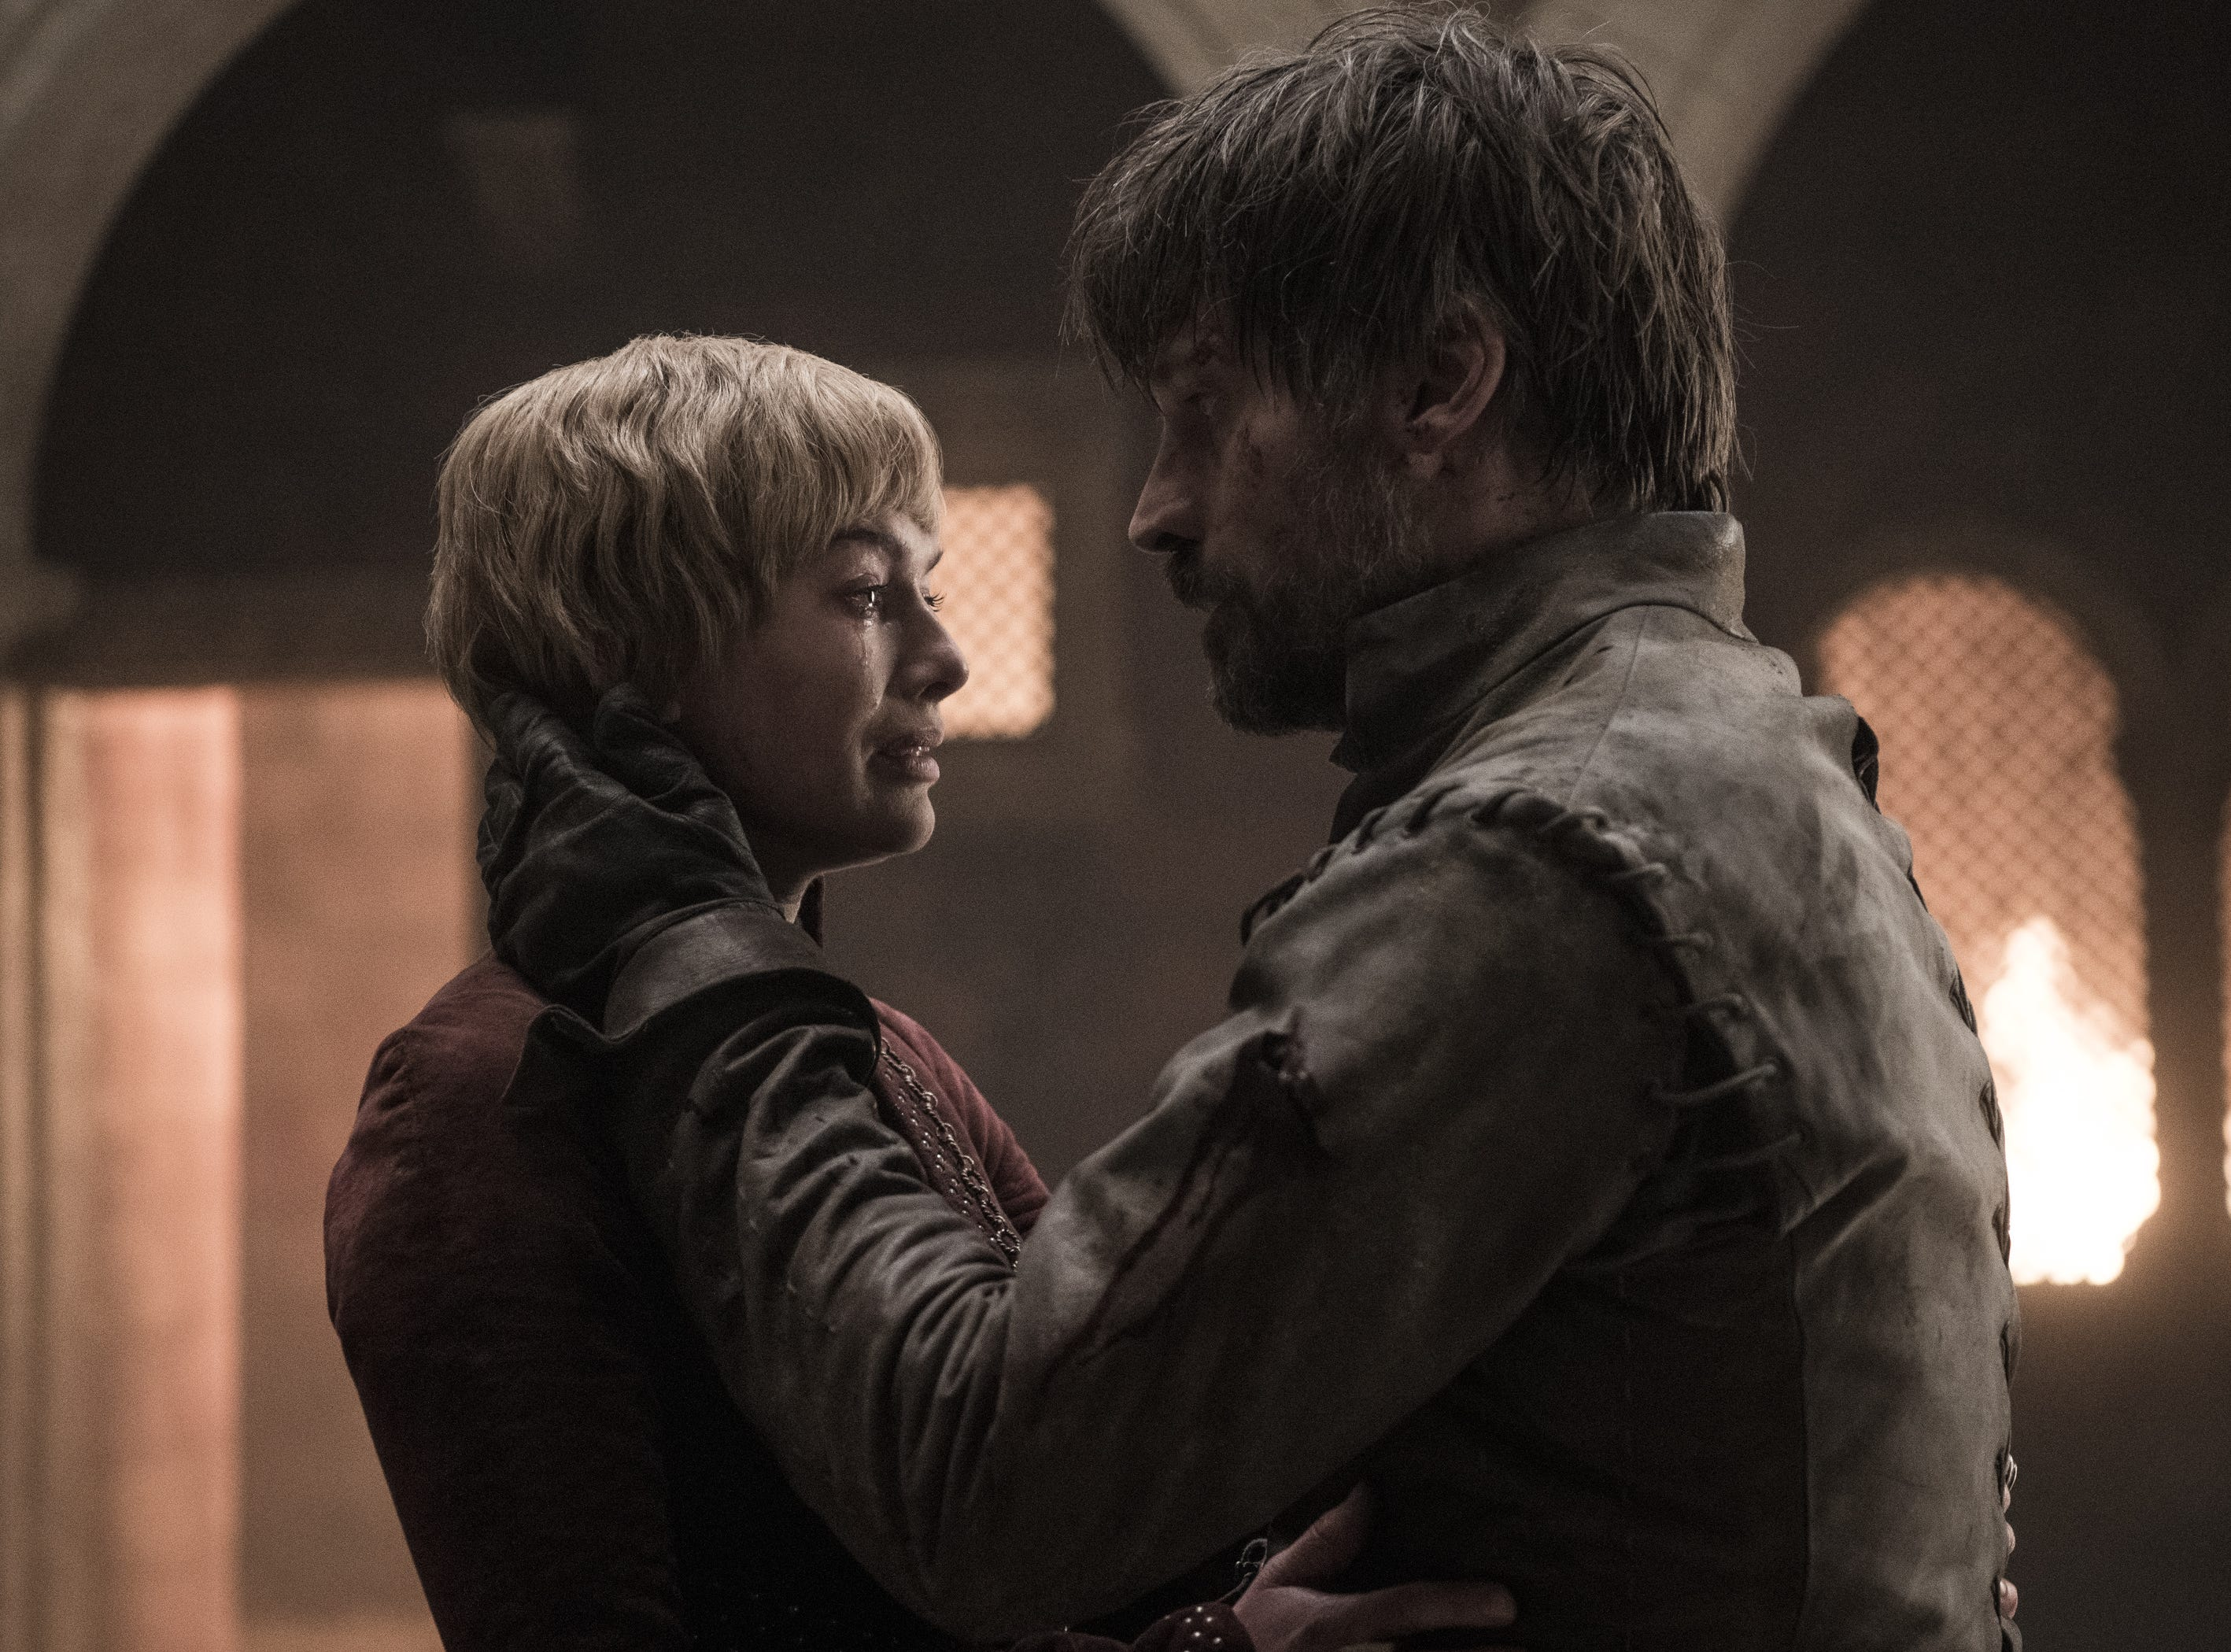 Cersei Lannister (Lena Headey) and her brother, Jaime (Nikolaj Coster-Waldau) share what appears to be their final moment before dying.